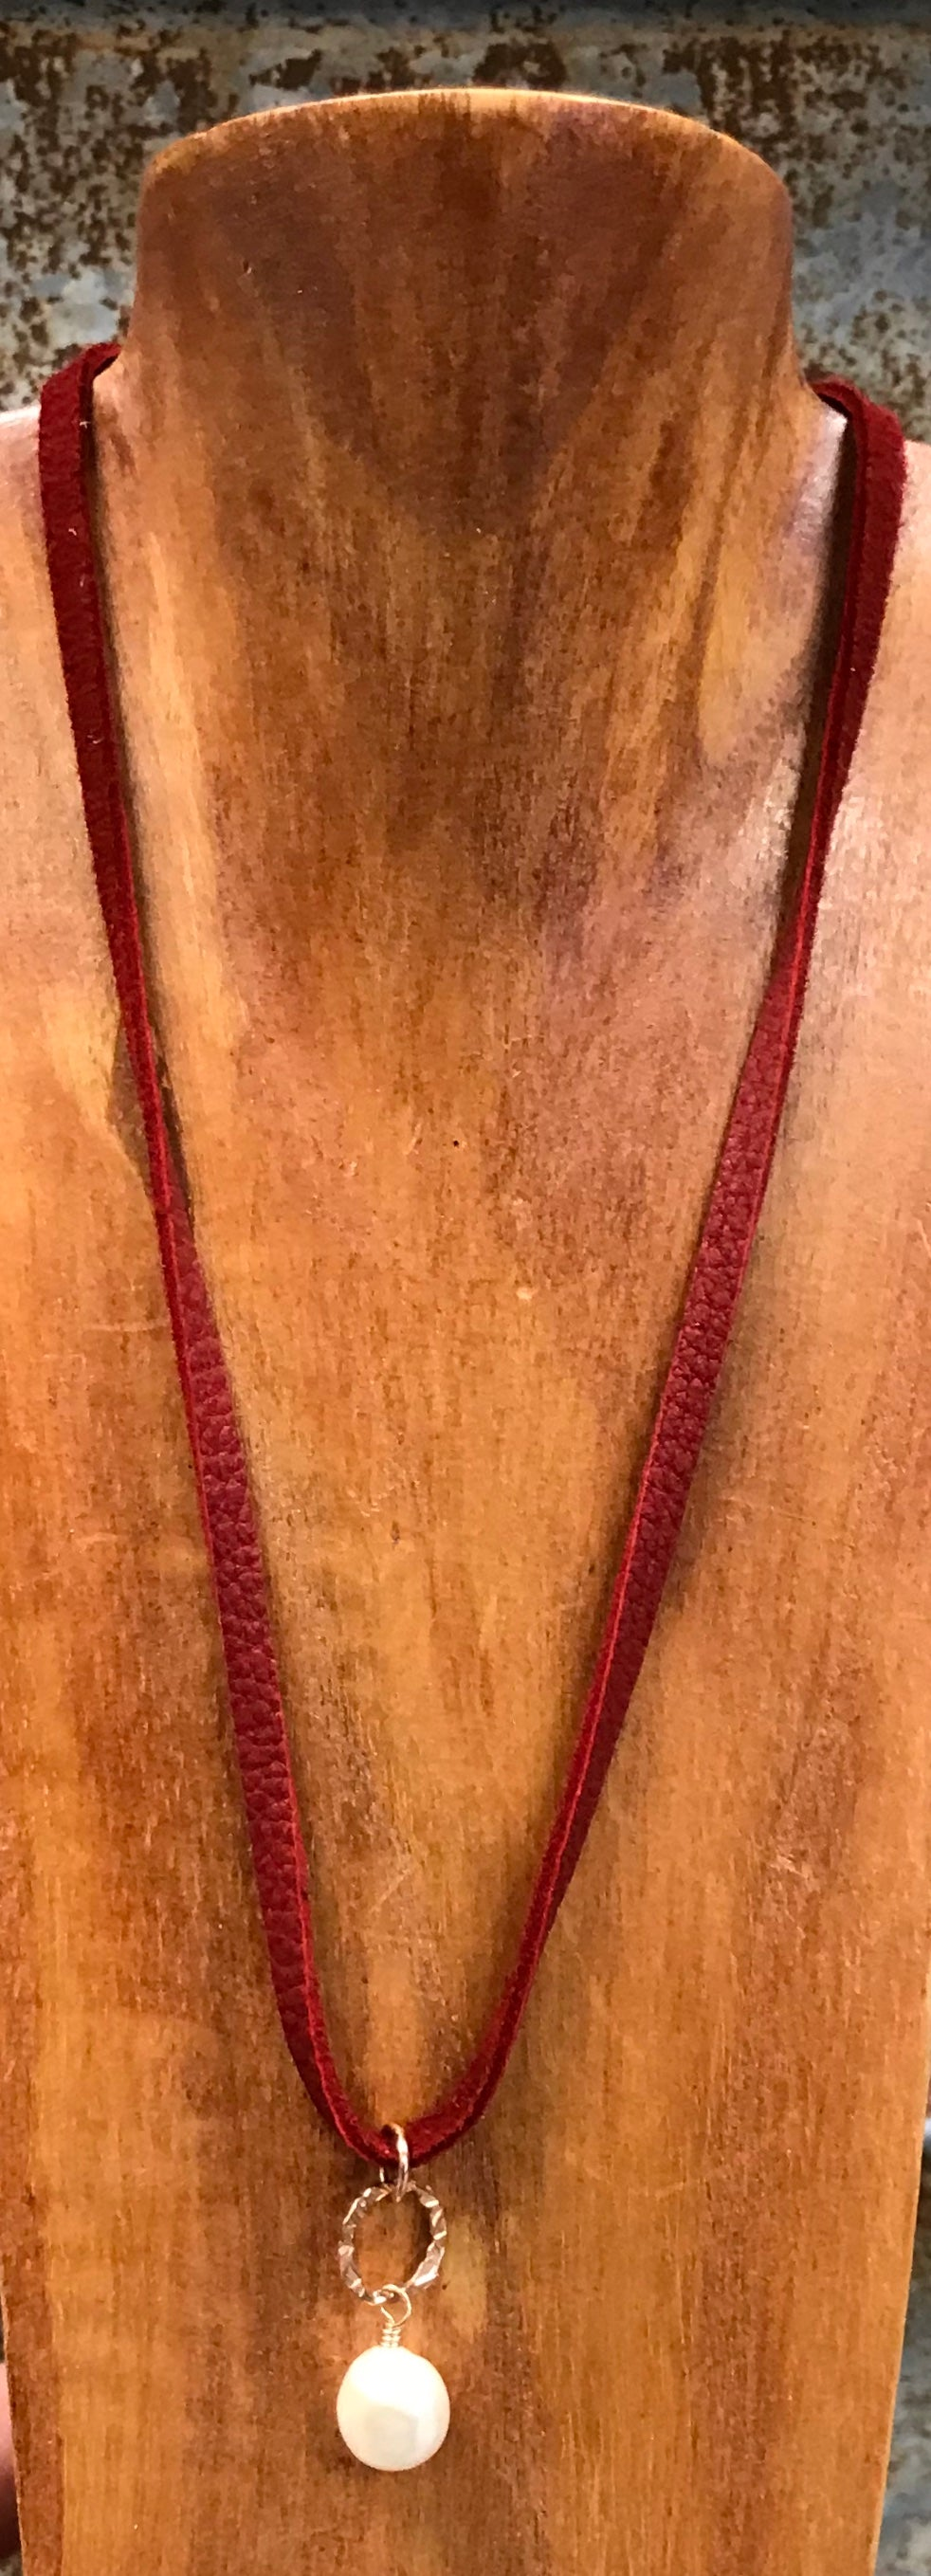 J.Forks Leather Choker With Fresh Water Pearl Necklace